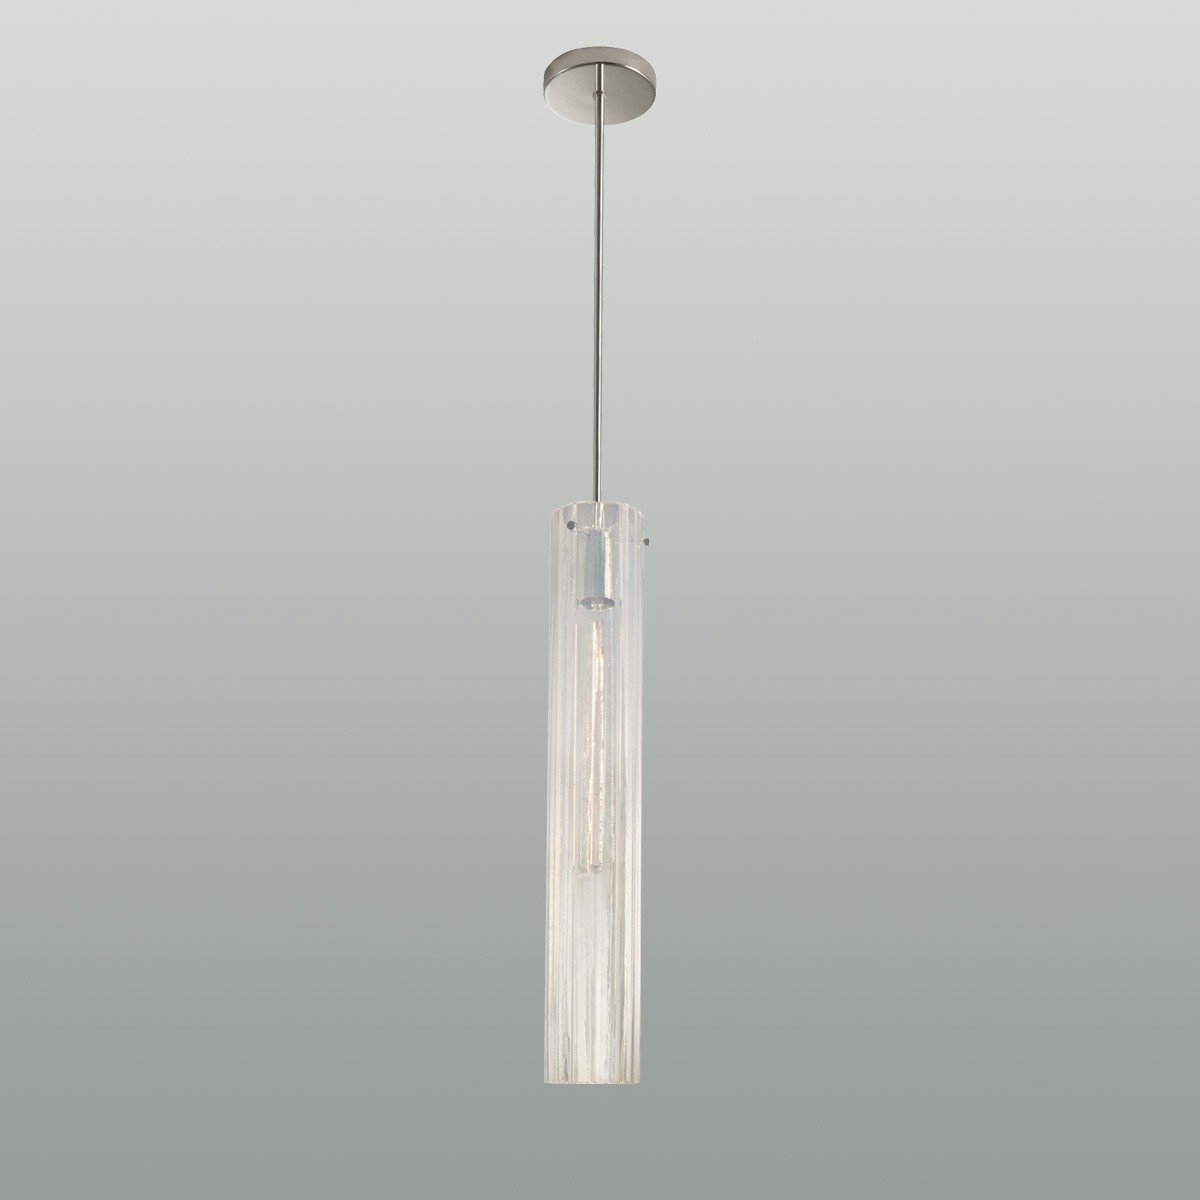 Bainbridge 1 Light Single Cylinder Pendants Pertaining To Current 1 Light Cylinder Pendant (View 5 of 20)